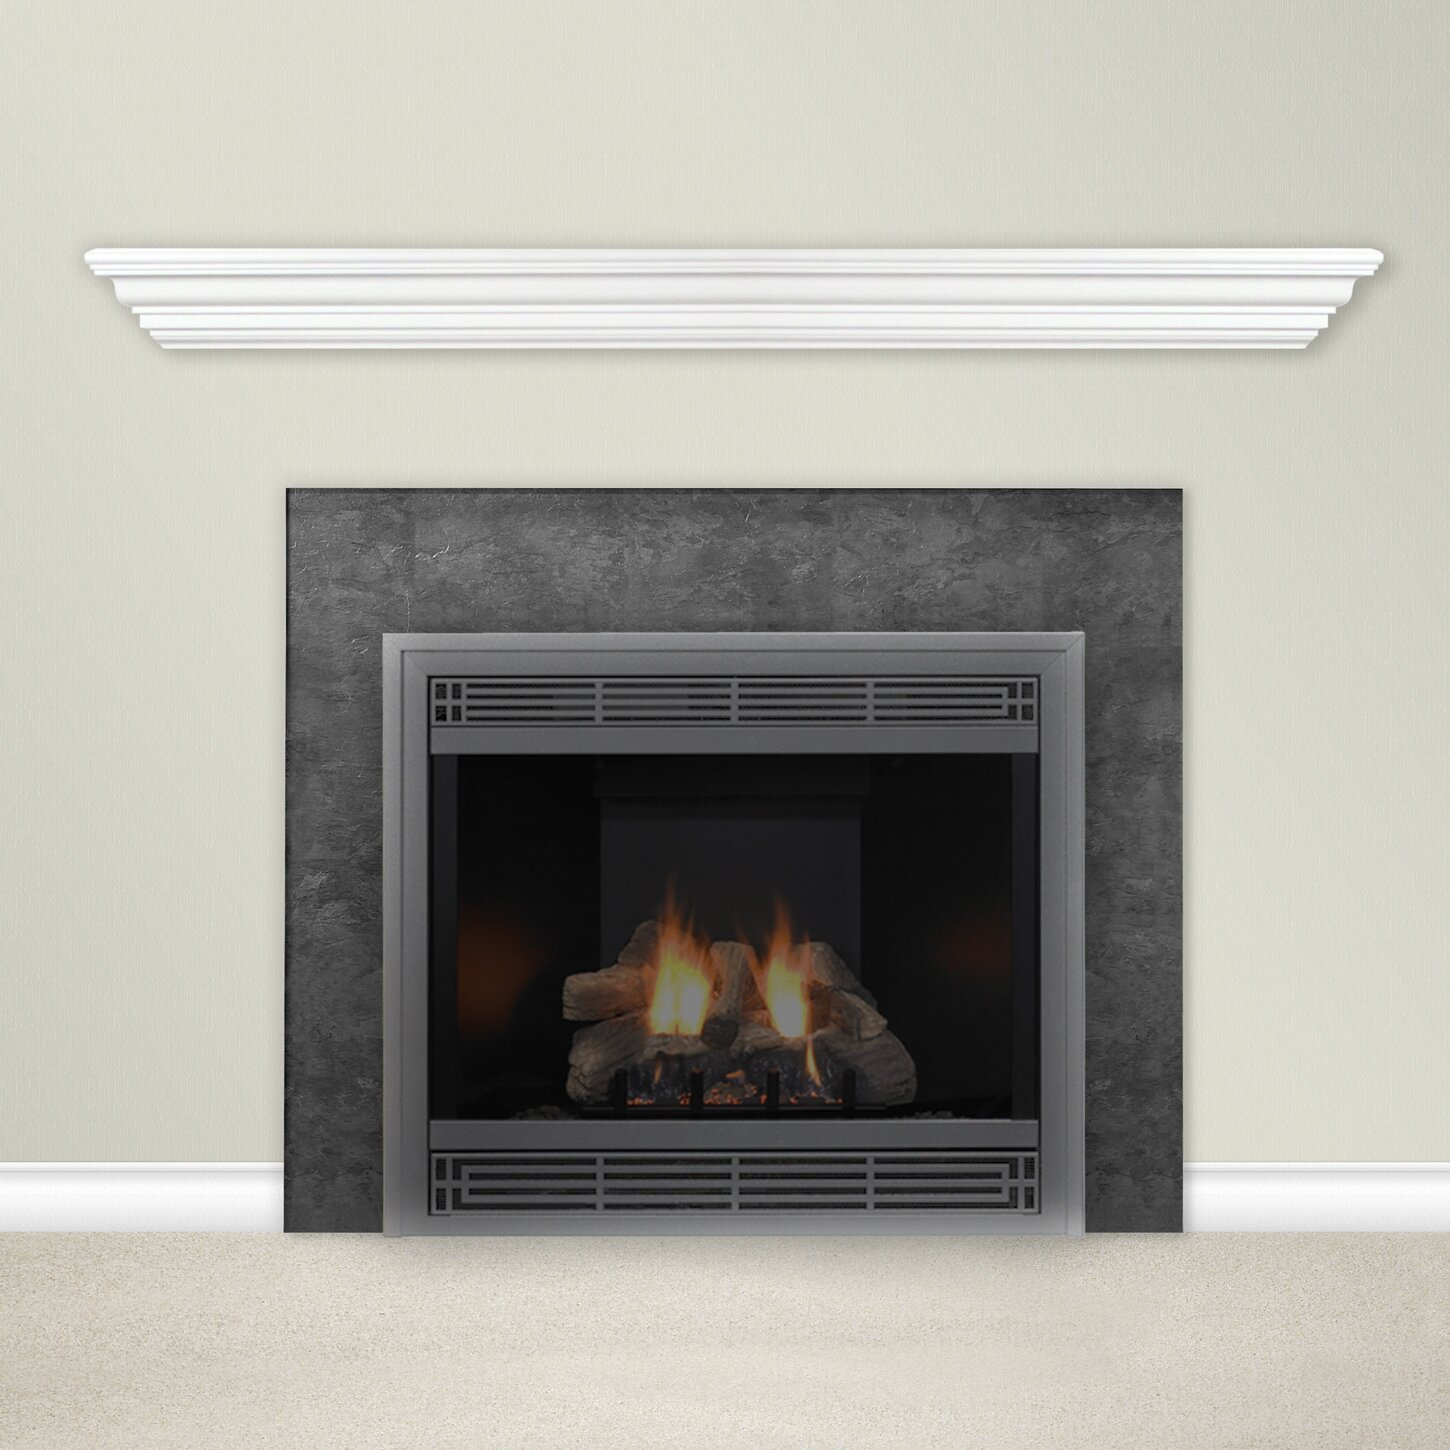 Housewarmer Fireplace Mantel Shelf Amp Reviews Wayfair